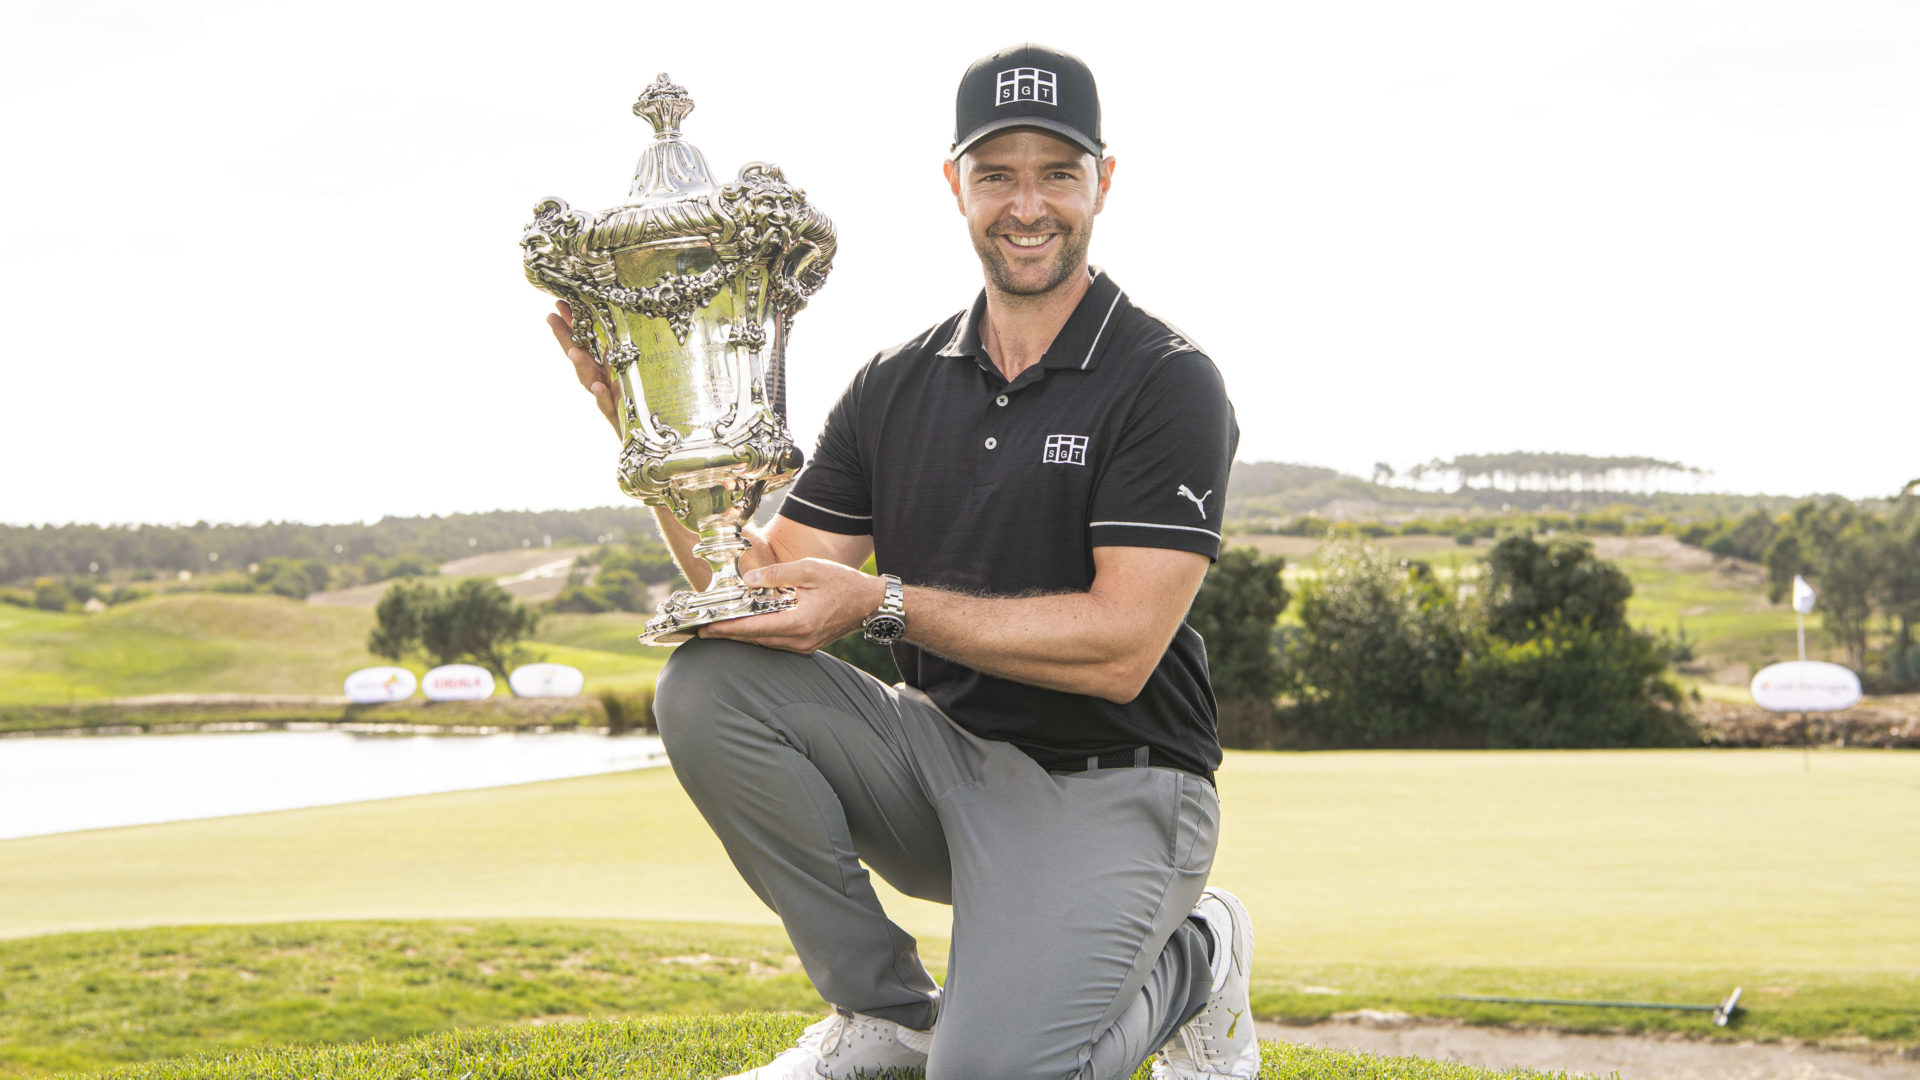 OBIDOS, PORTUGAL - SEPTEMBER 26: Marcel Schneider of Germany poses at the 18th green with the Trophy after winning the Open de Portugal at Royal Obidos at Royal Obidos Spa & Golf Resort on September 26, 2021 in Obidos, Portugal. (Photo by Octavio Passos/Getty Images)